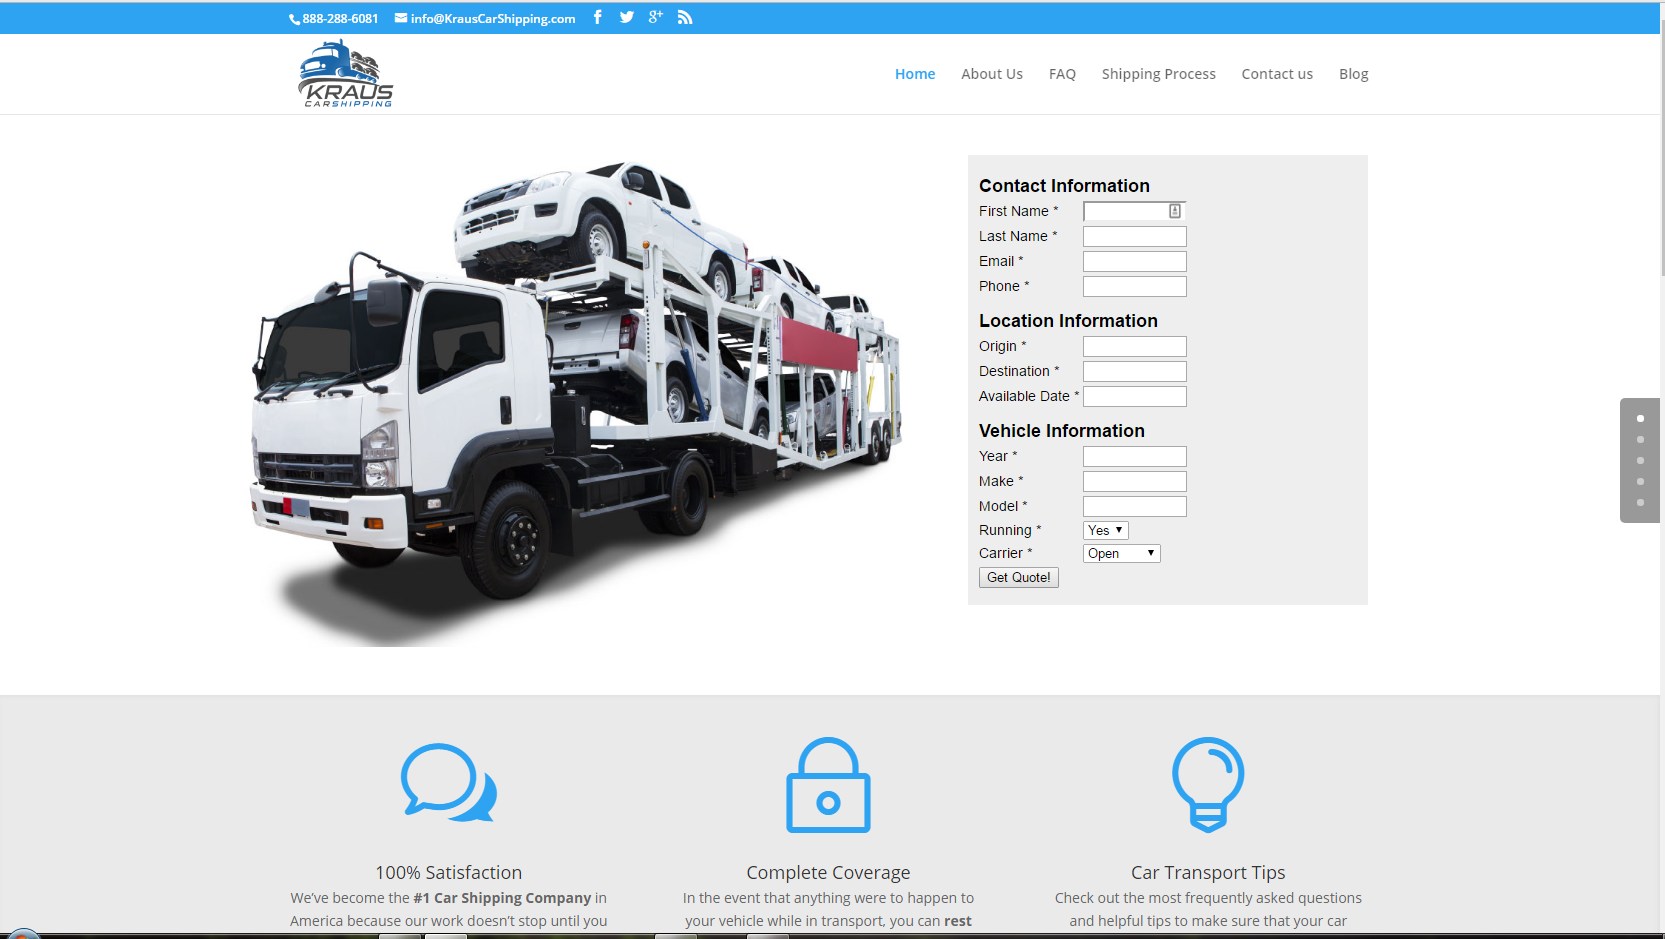 Kraus Car Shipping Web Design